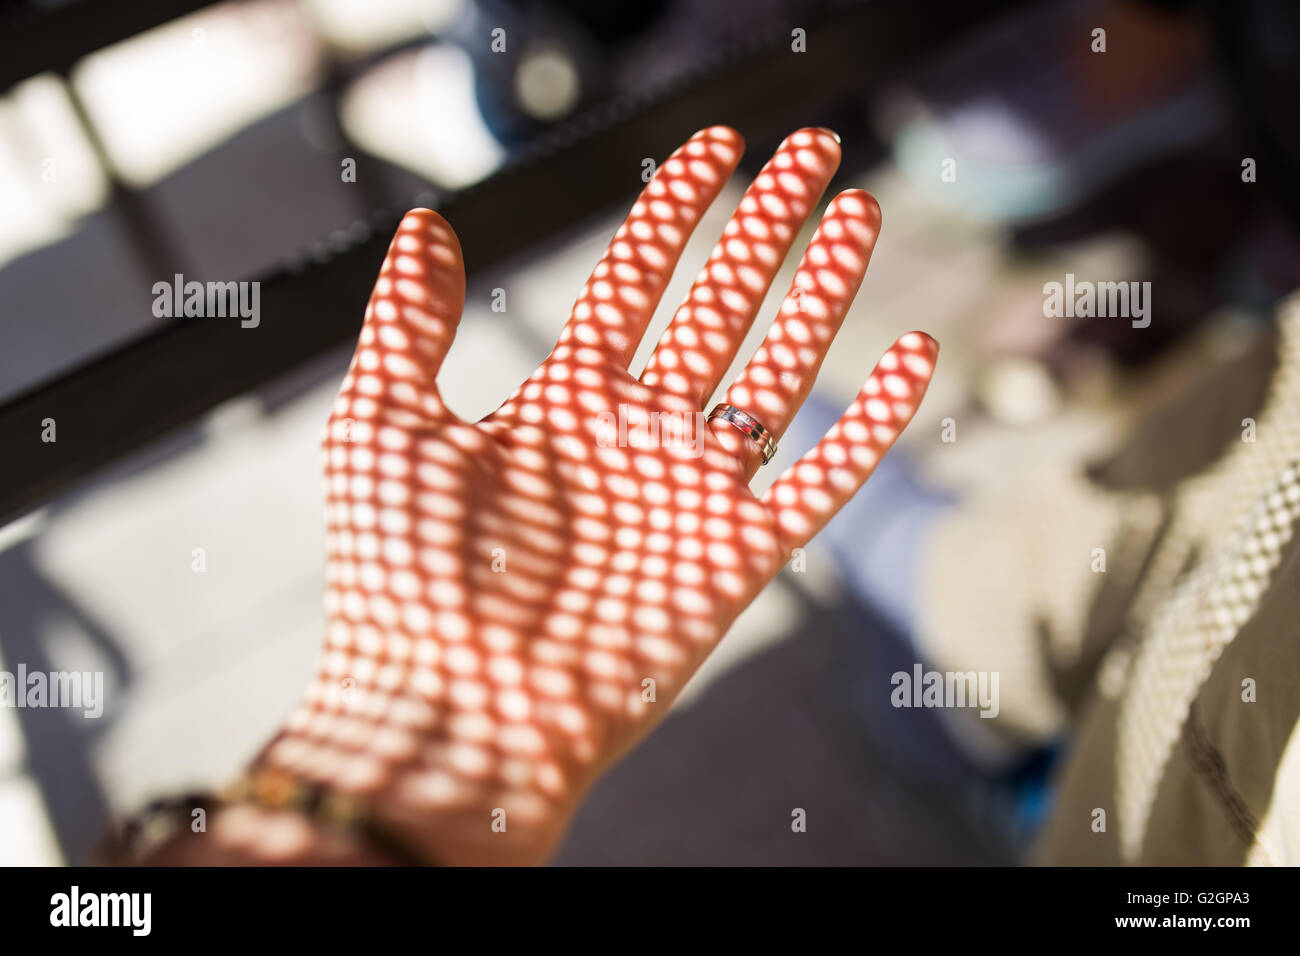 Shadow pattern on the hand - Stock Image